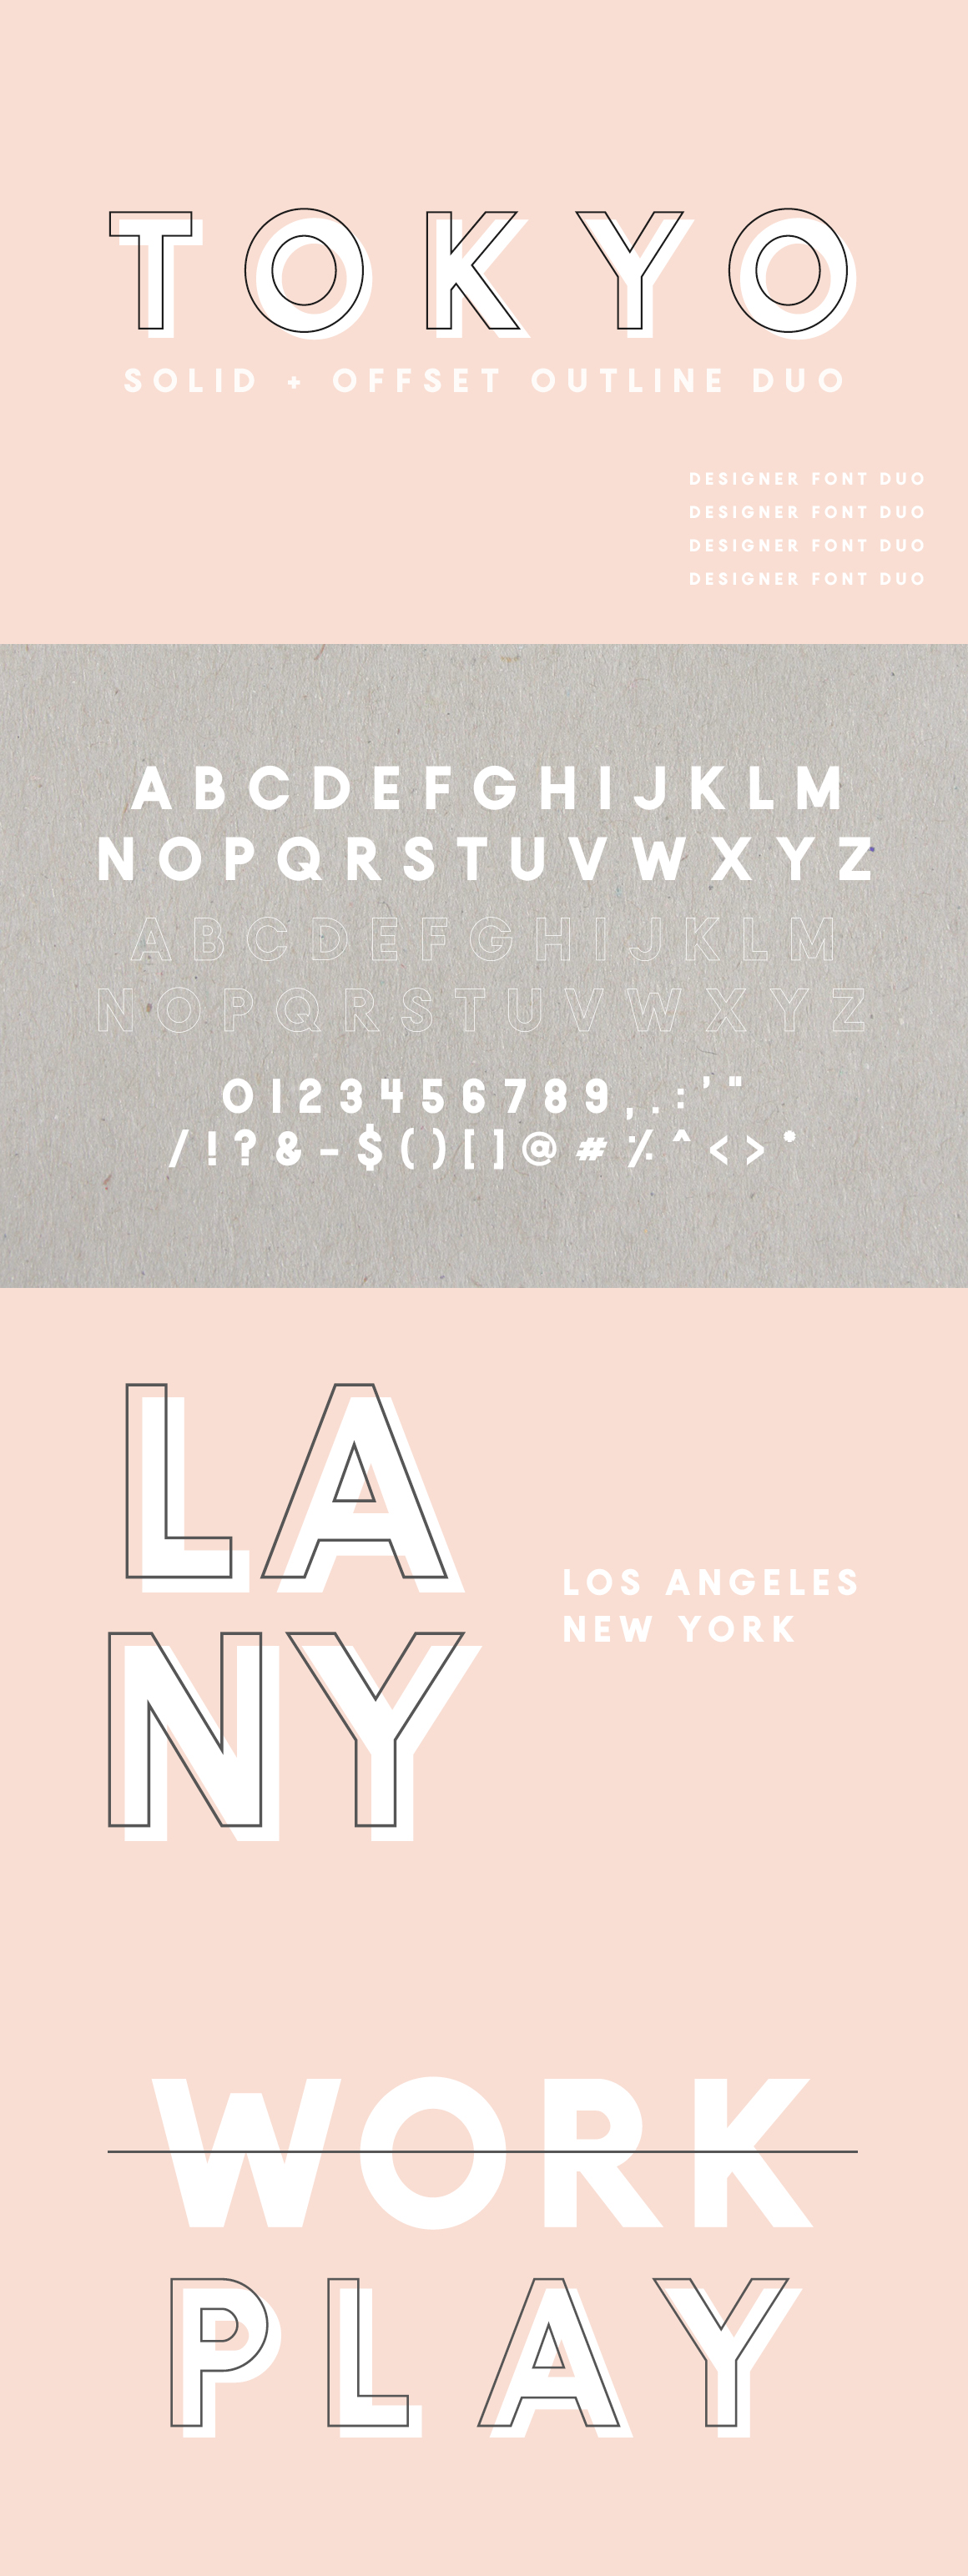 Tokyo   A Designer Font Duo example image 6